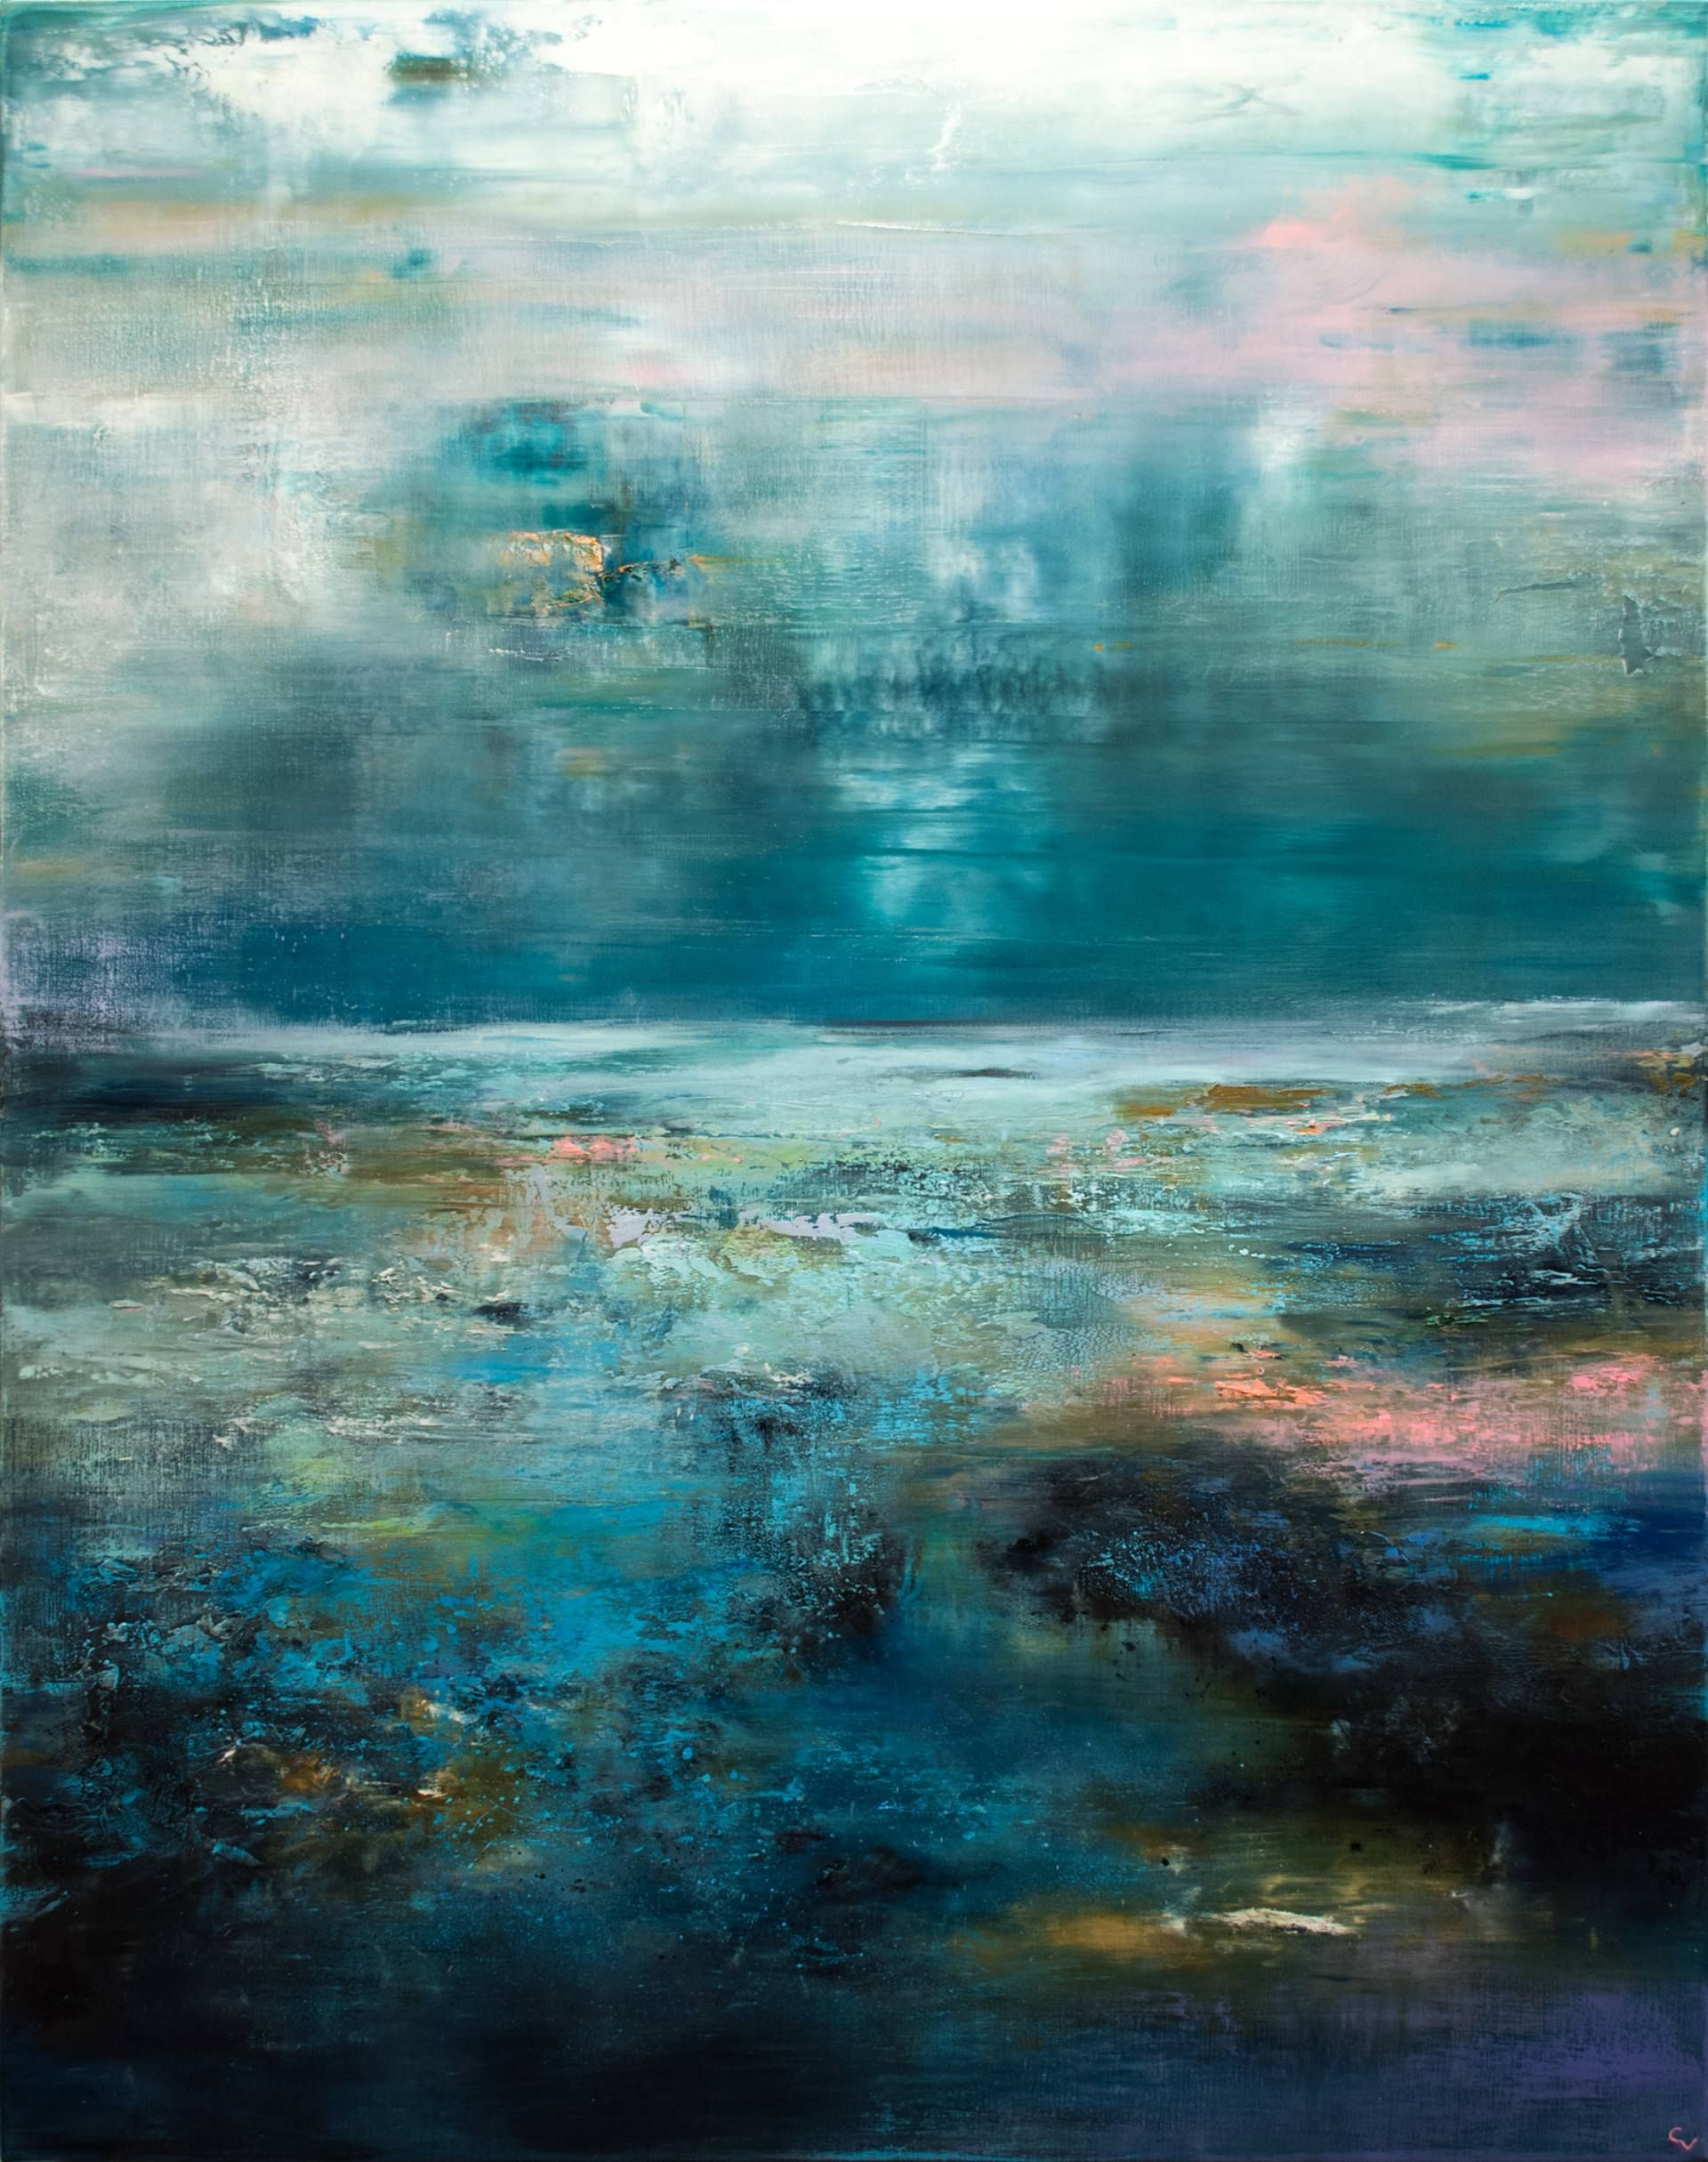 The Blues Painting Abstract Abstract Landscape Abstract Painting